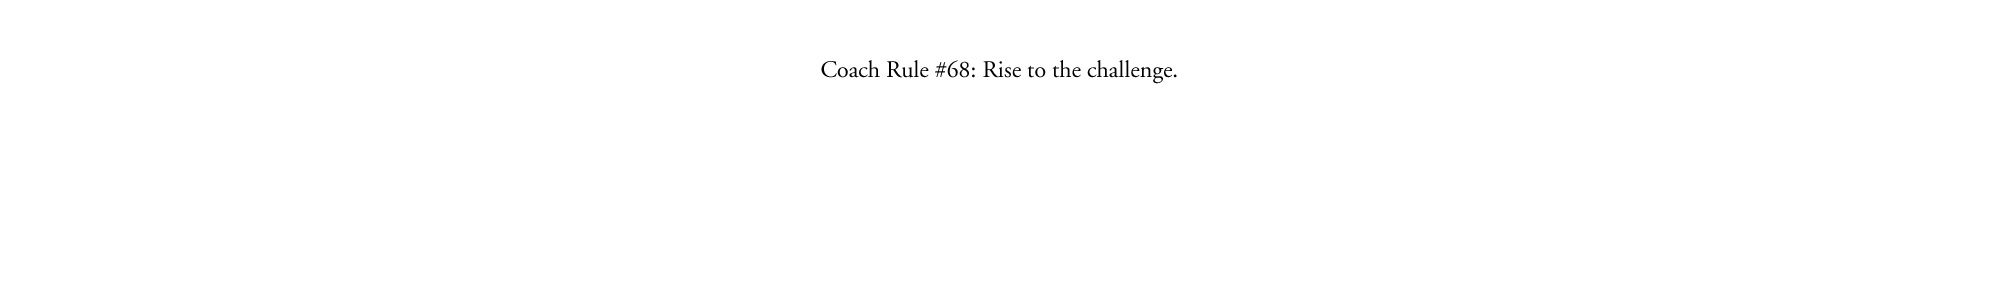 Coach Rule#68: Rise to the challenge.